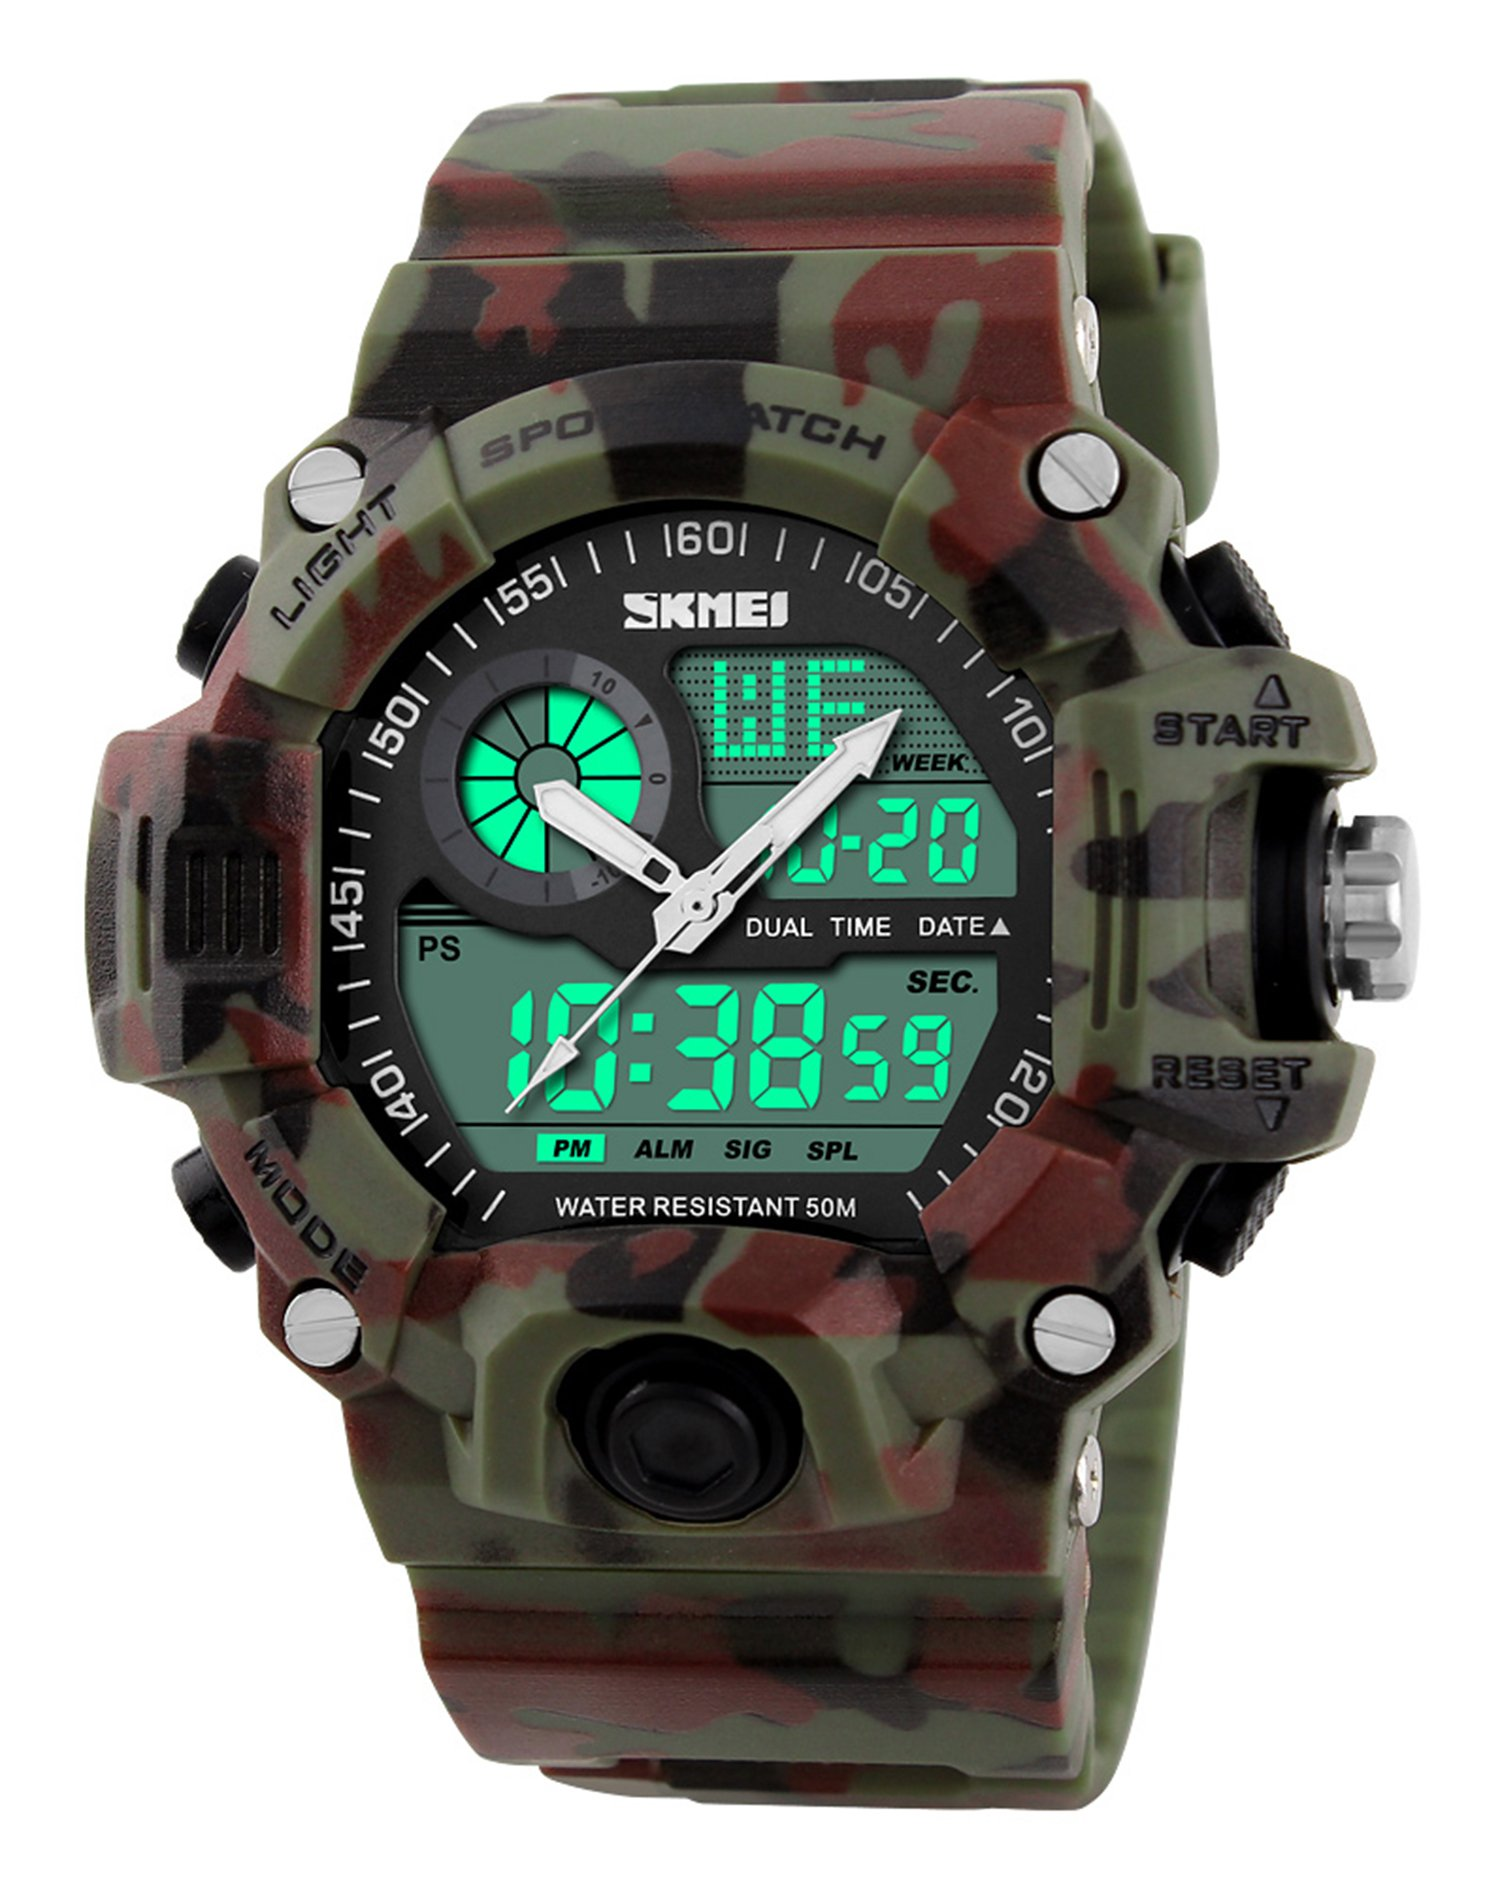 Gosasa Multi Function Military S-shock Camouflage Green Sports Watch LED Digital Waterproof Alarm Watches by Gosasa (Image #1)